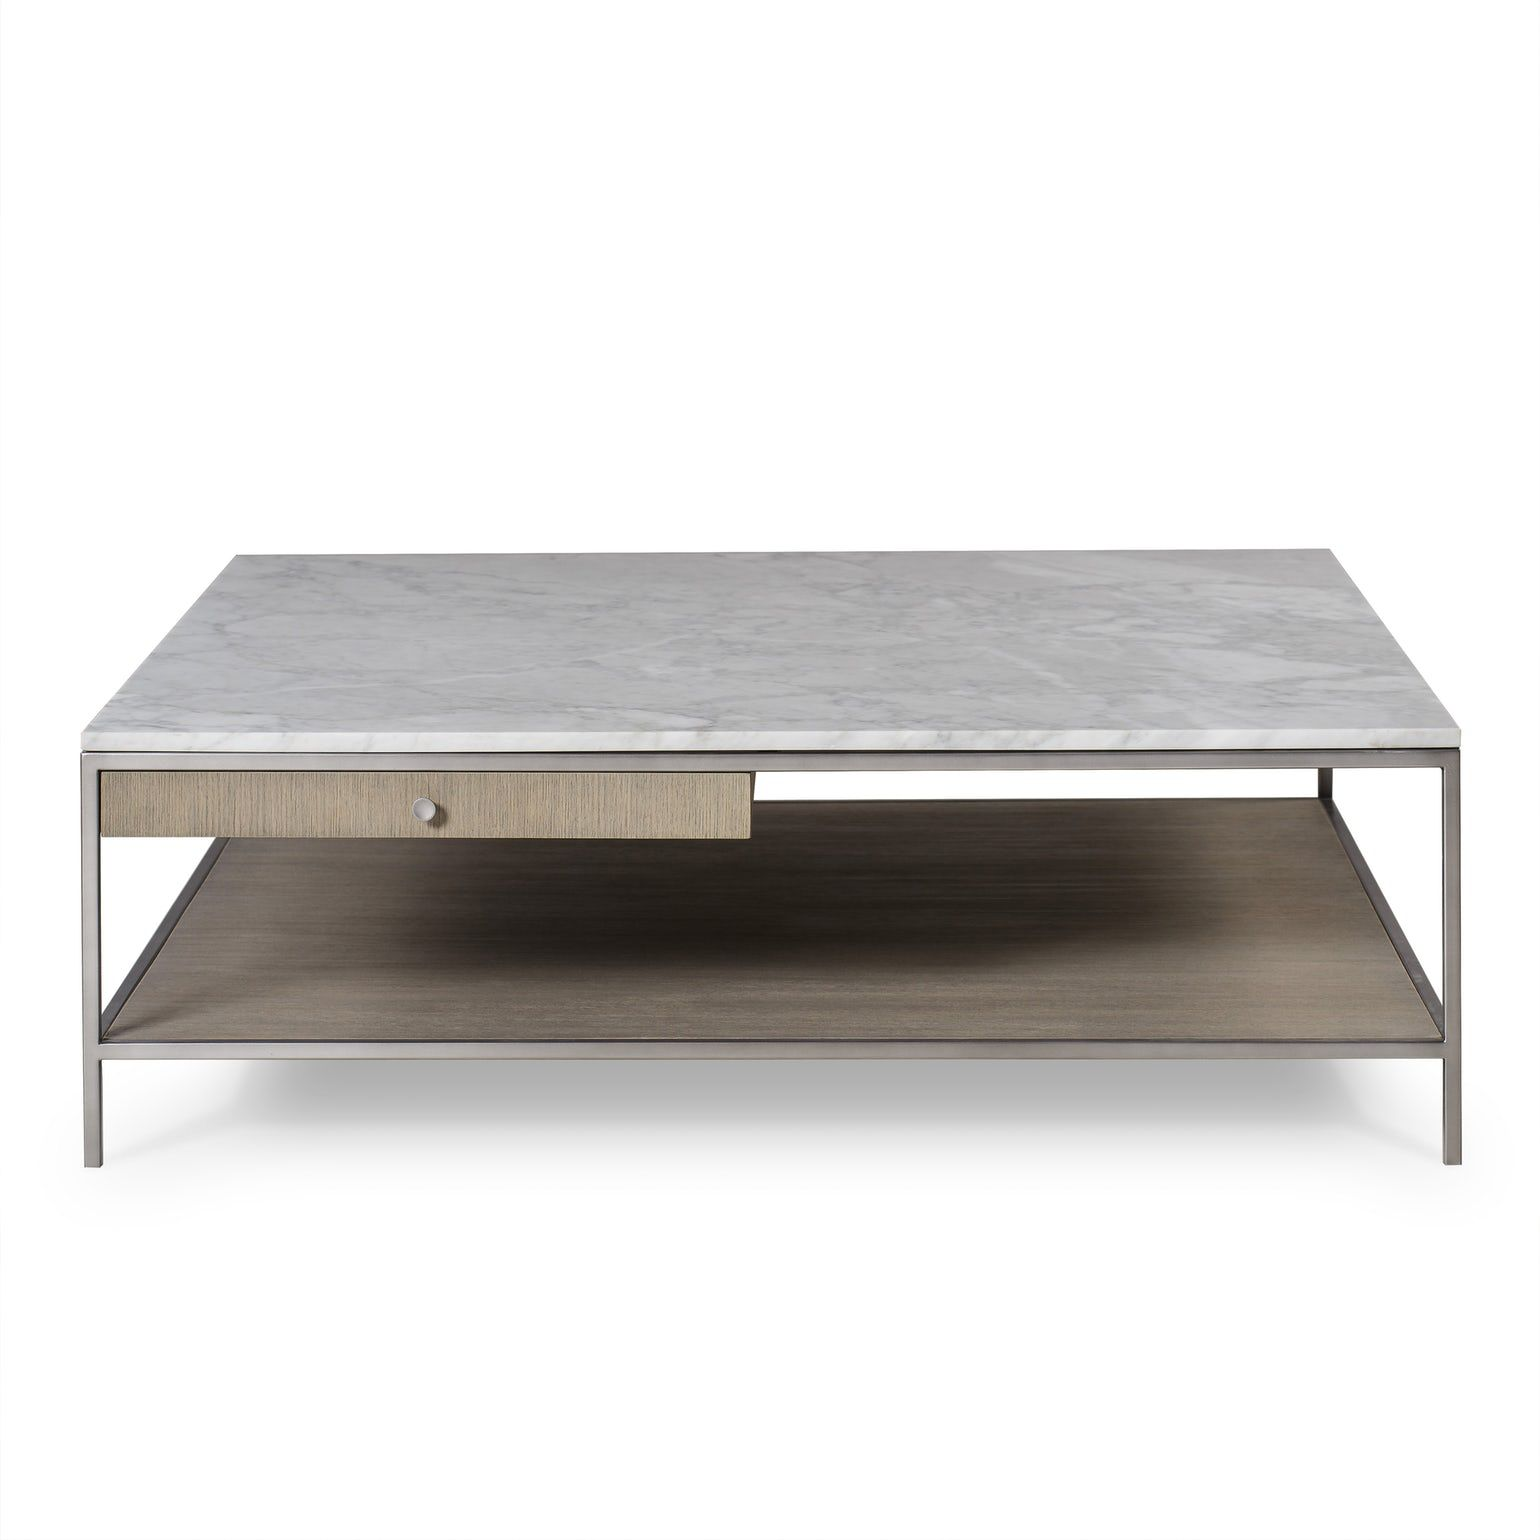 Paxton Coffee Table Square Large Modern Coffee Cocktail